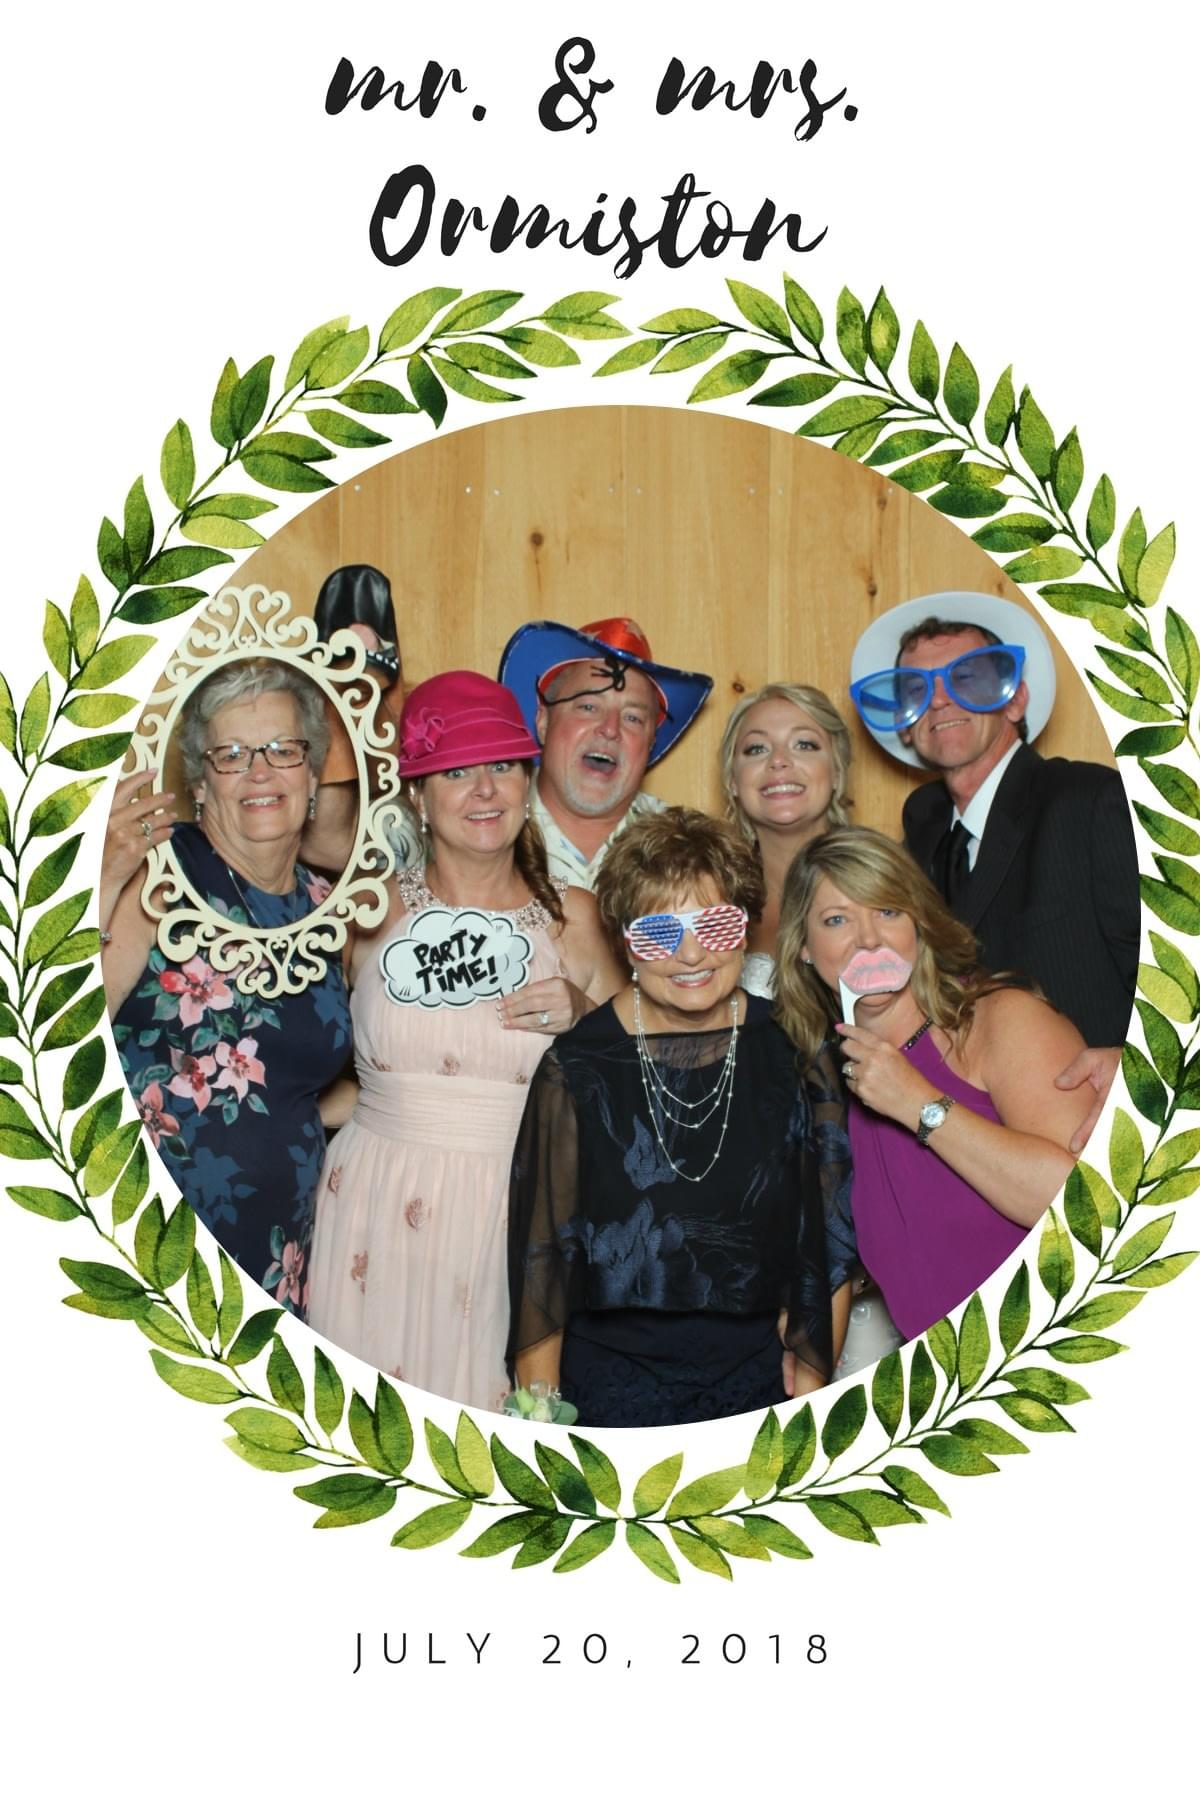 Fun for all ages with the Magic Selfie Mirror Photo booth in Maryland